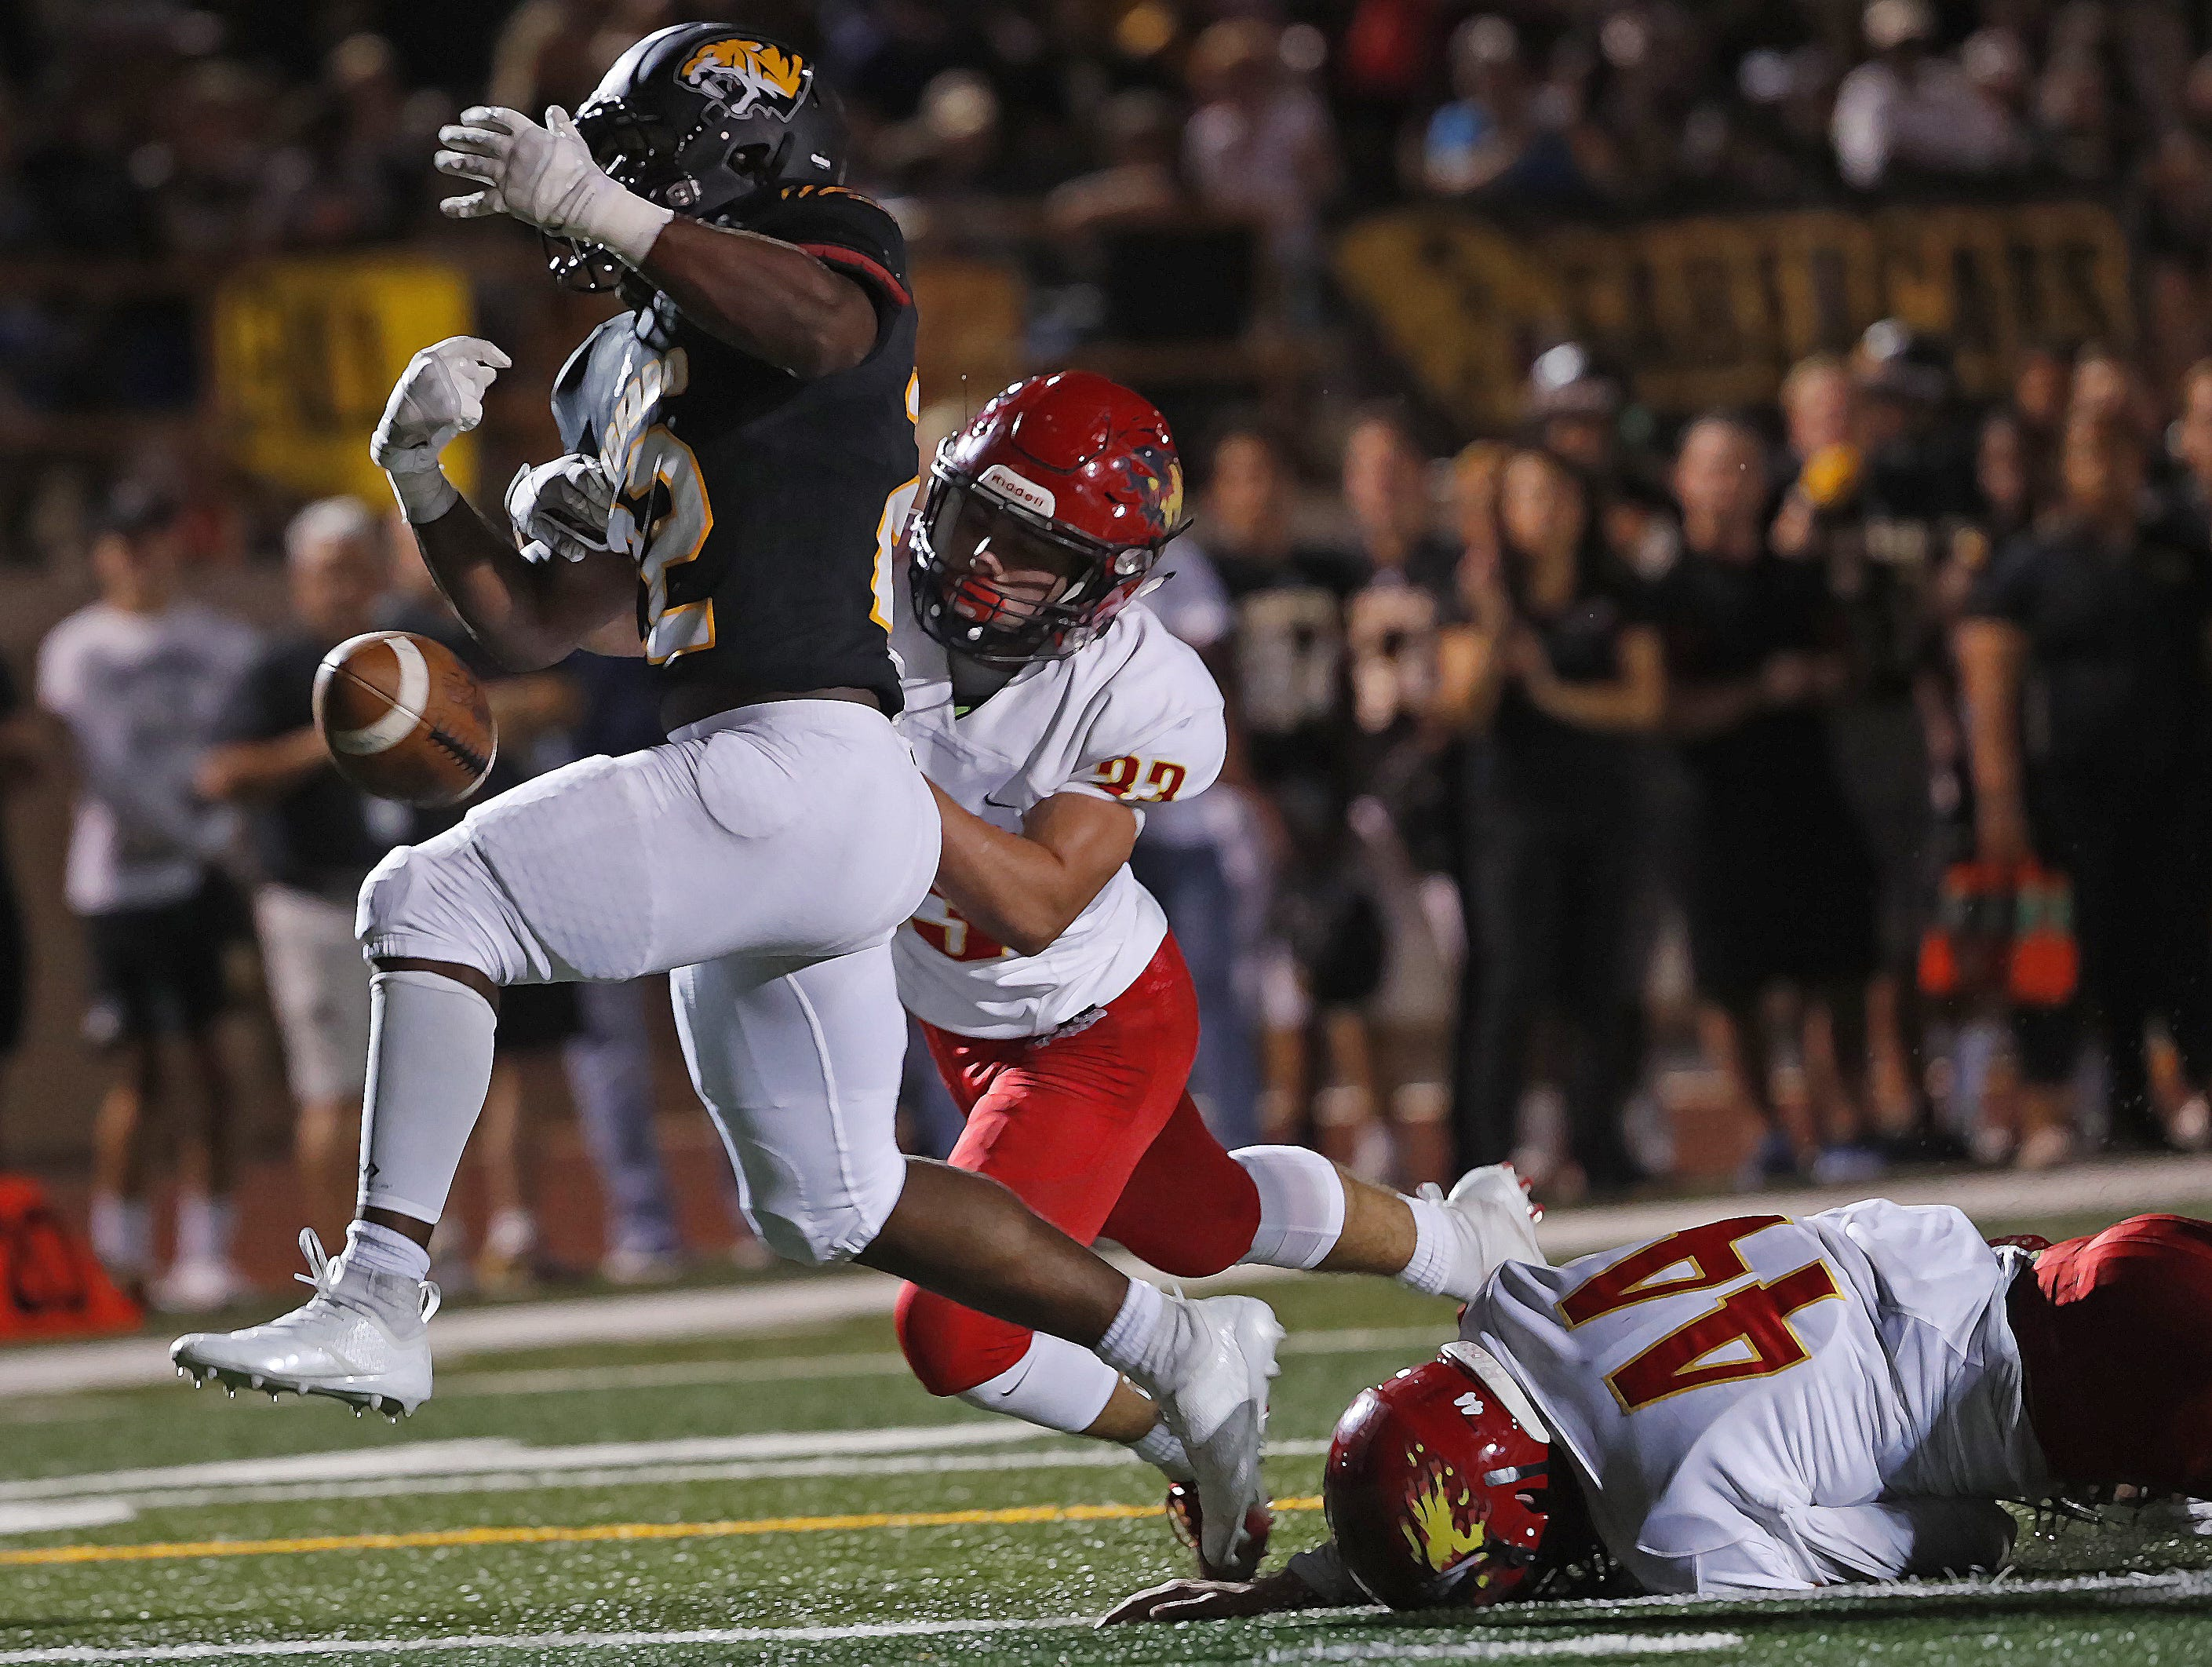 Chaparral's Braxen Tessler (33) forces a fumble from Saguaro's Israel Benjamin (22) right before the end zone during the first half at Saguaro High School in Scottsdale, Ariz. on Sept. 14, 2018.